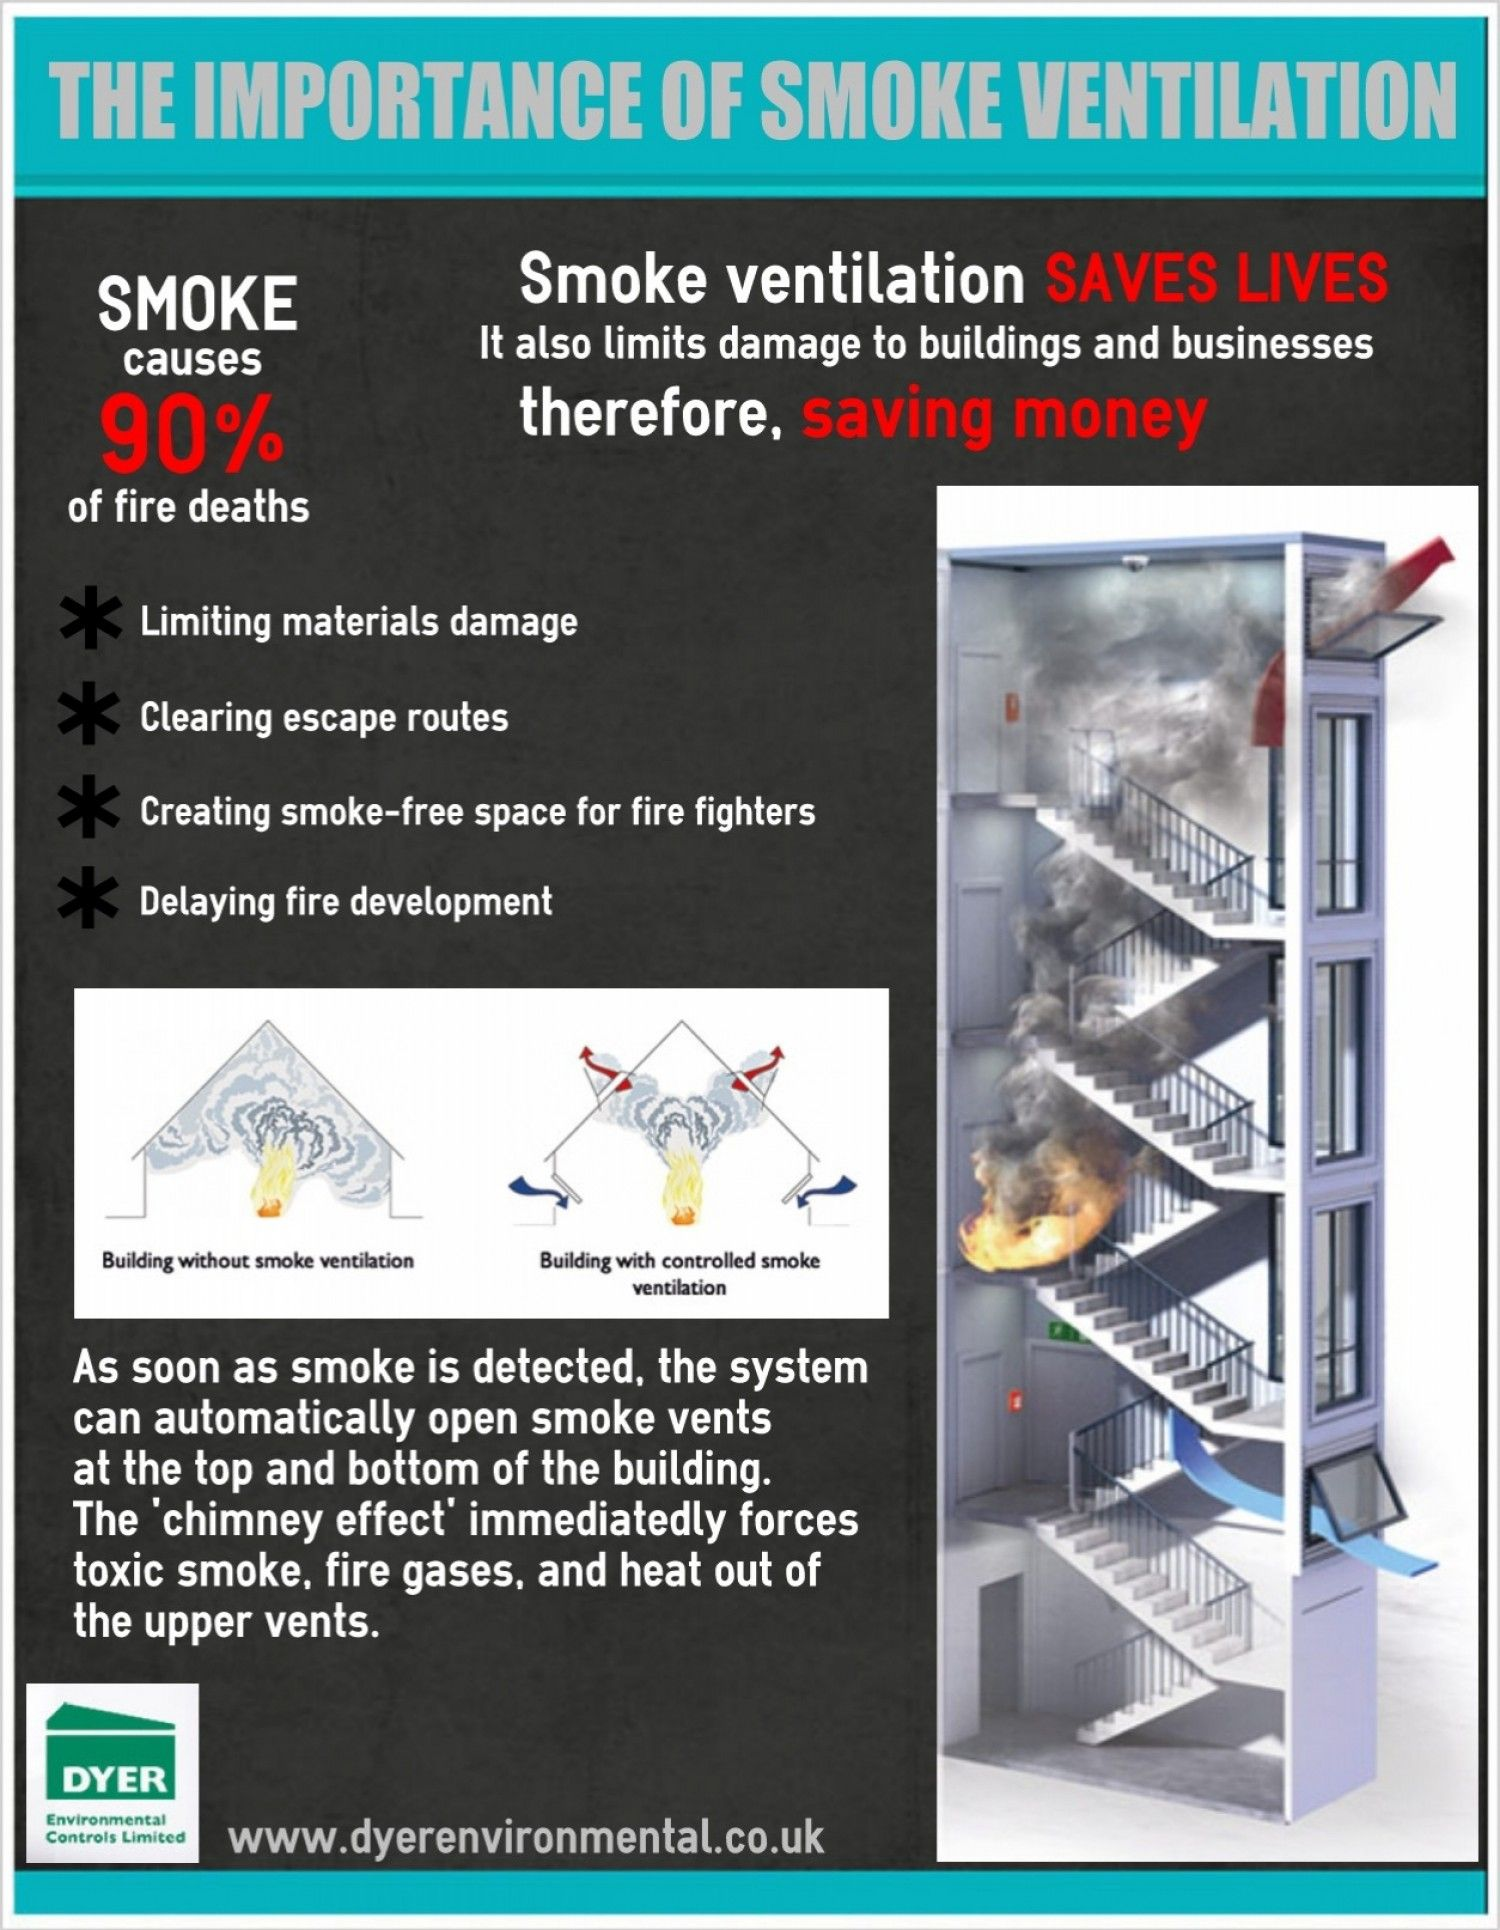 The Importance Of Smoke Ventilation Infographic